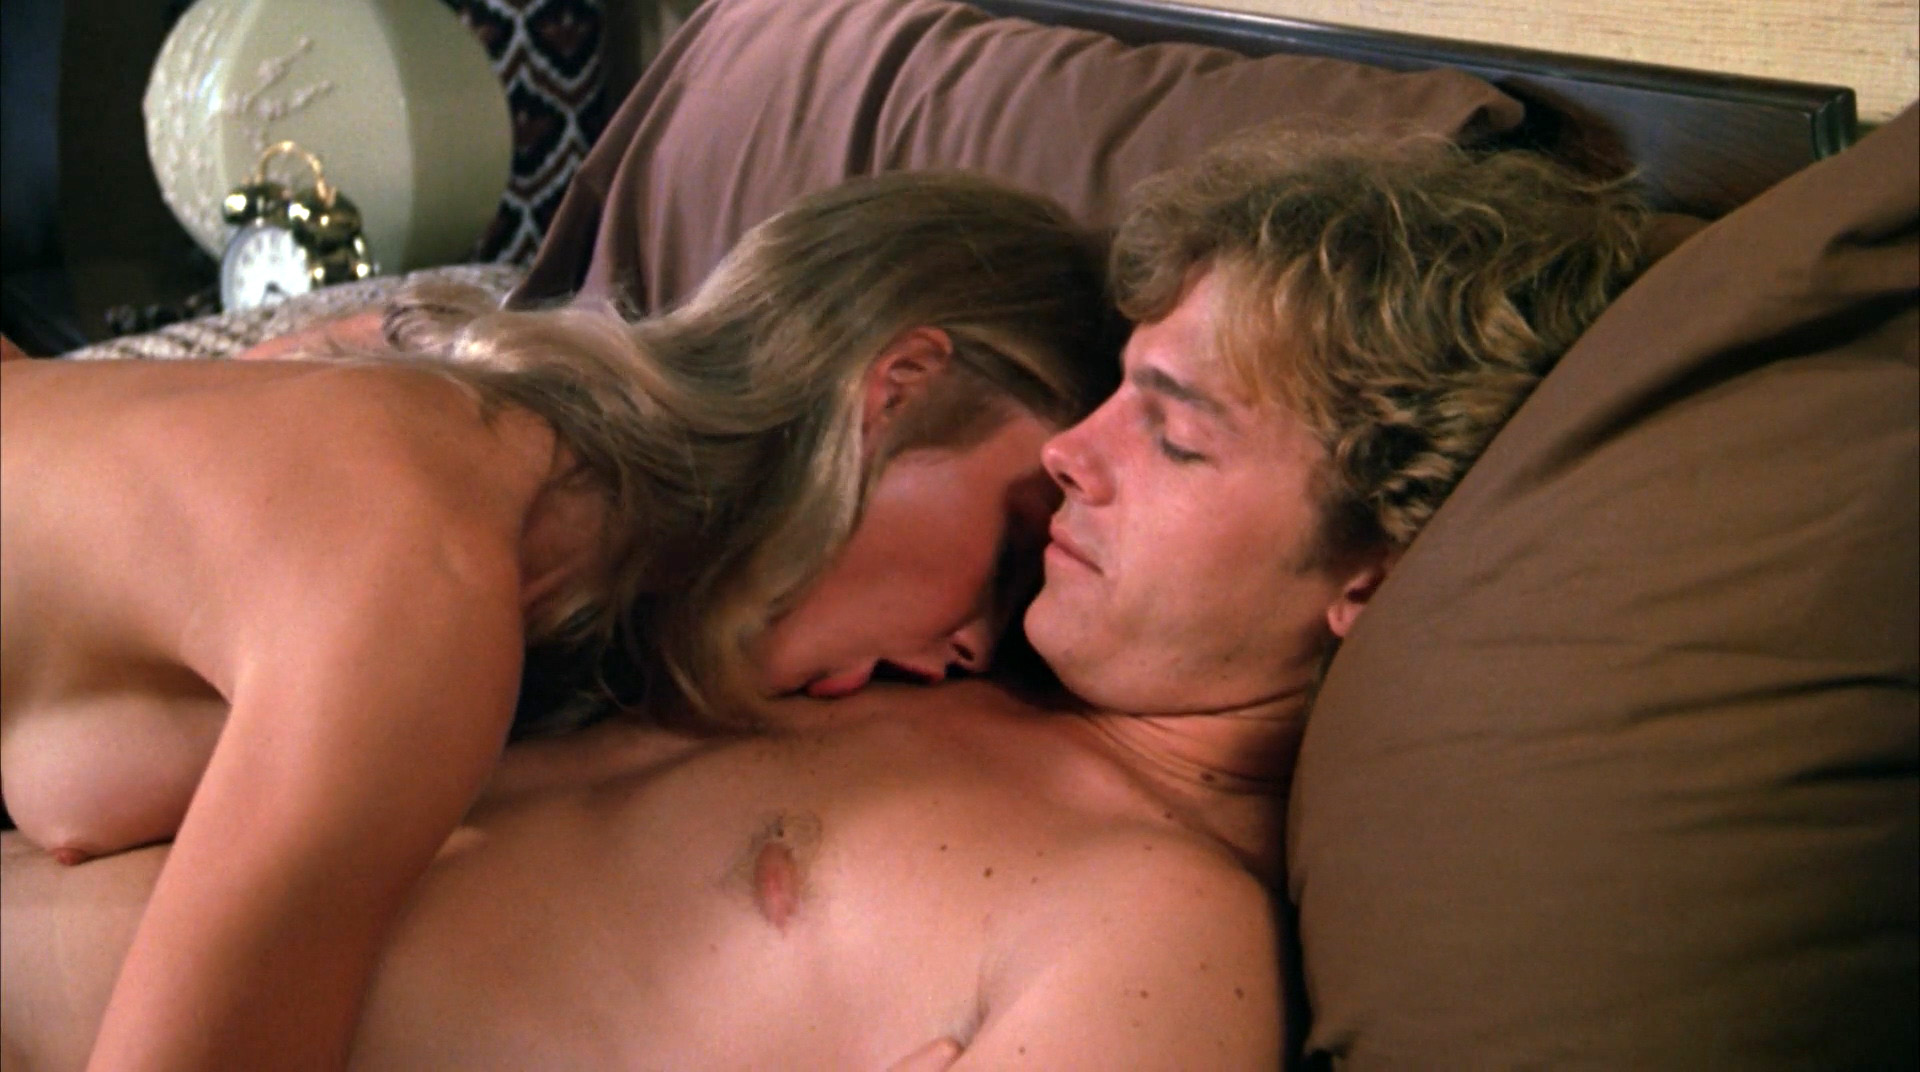 Cindy morgan nude scene